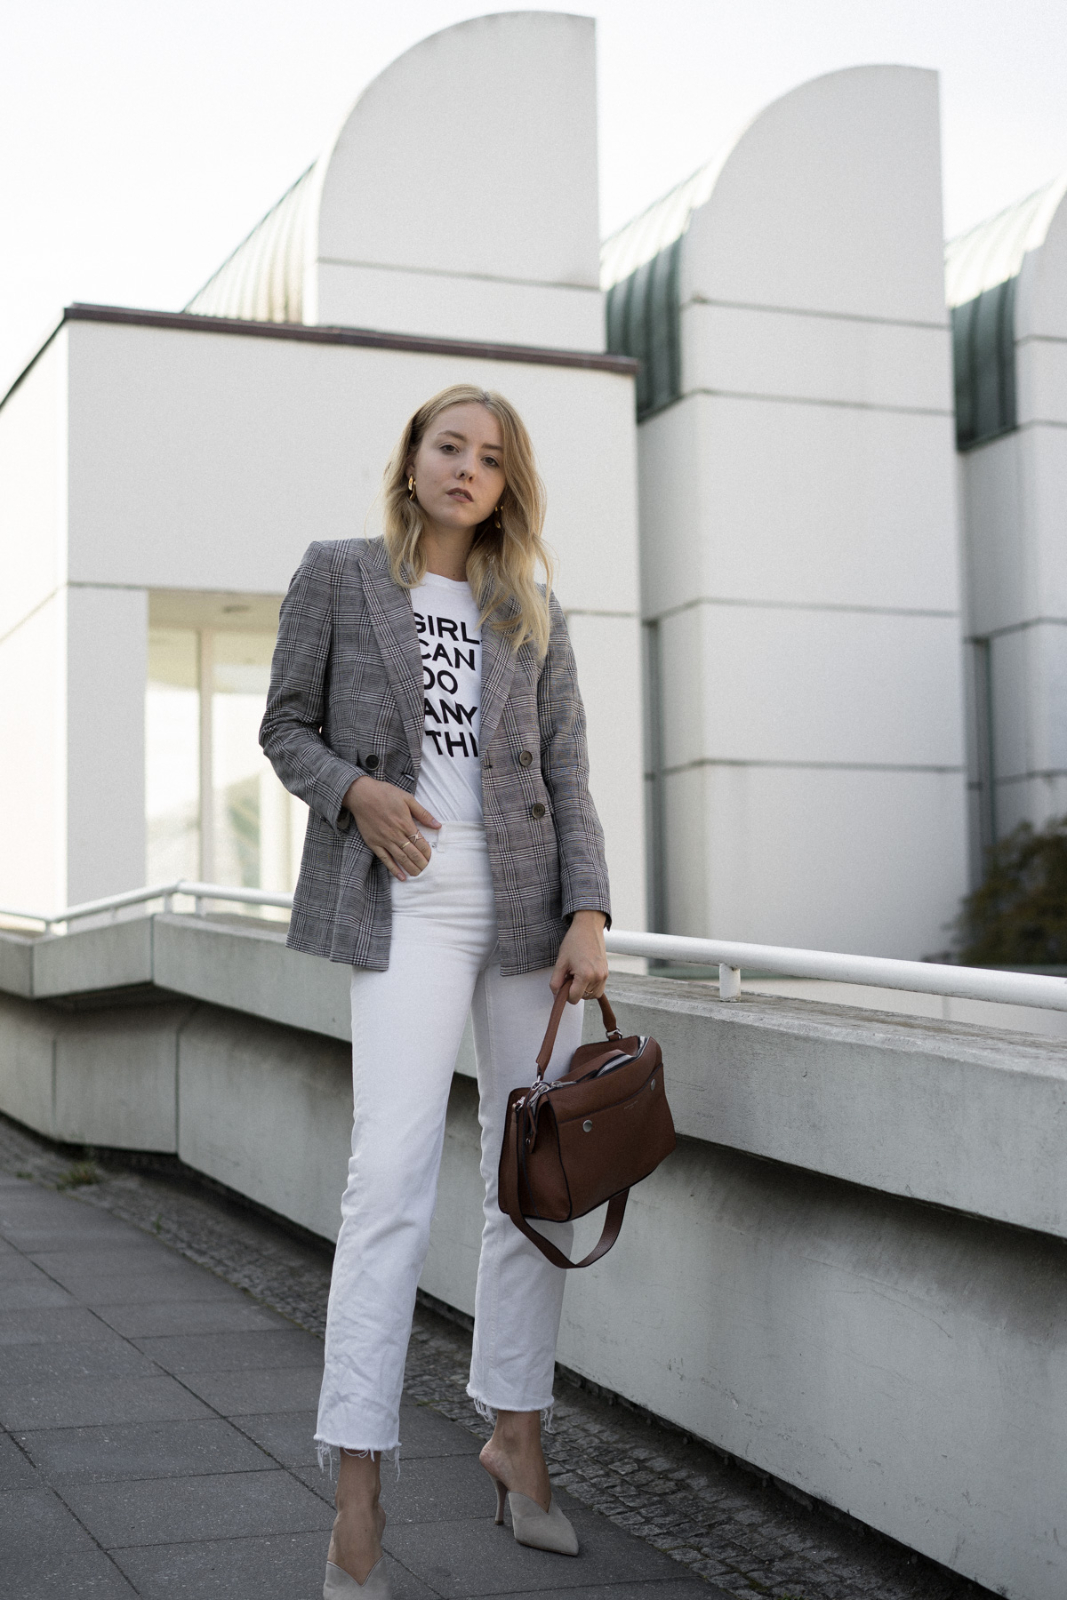 Checked Blazer_The-Limits-of-Control-Fashion-Fashionblogger-Blogger-Berlin-Deutschland-Modeblog-Modeblogger_zadig&voltaire_ Outfit_Streetstyle_Blogger_Fashionblogger